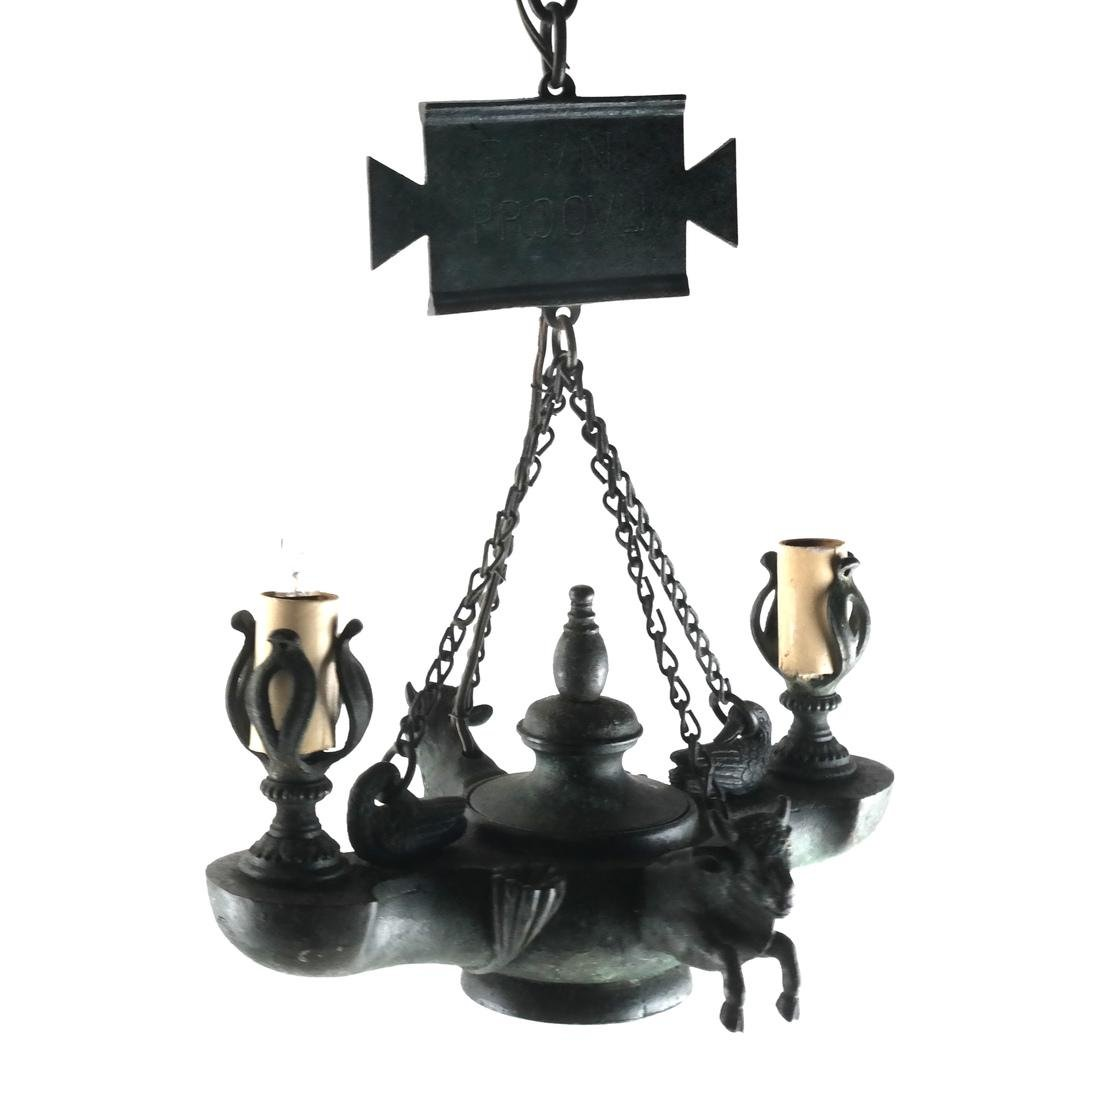 Ancient Roman-Style Grand Tour Lamp